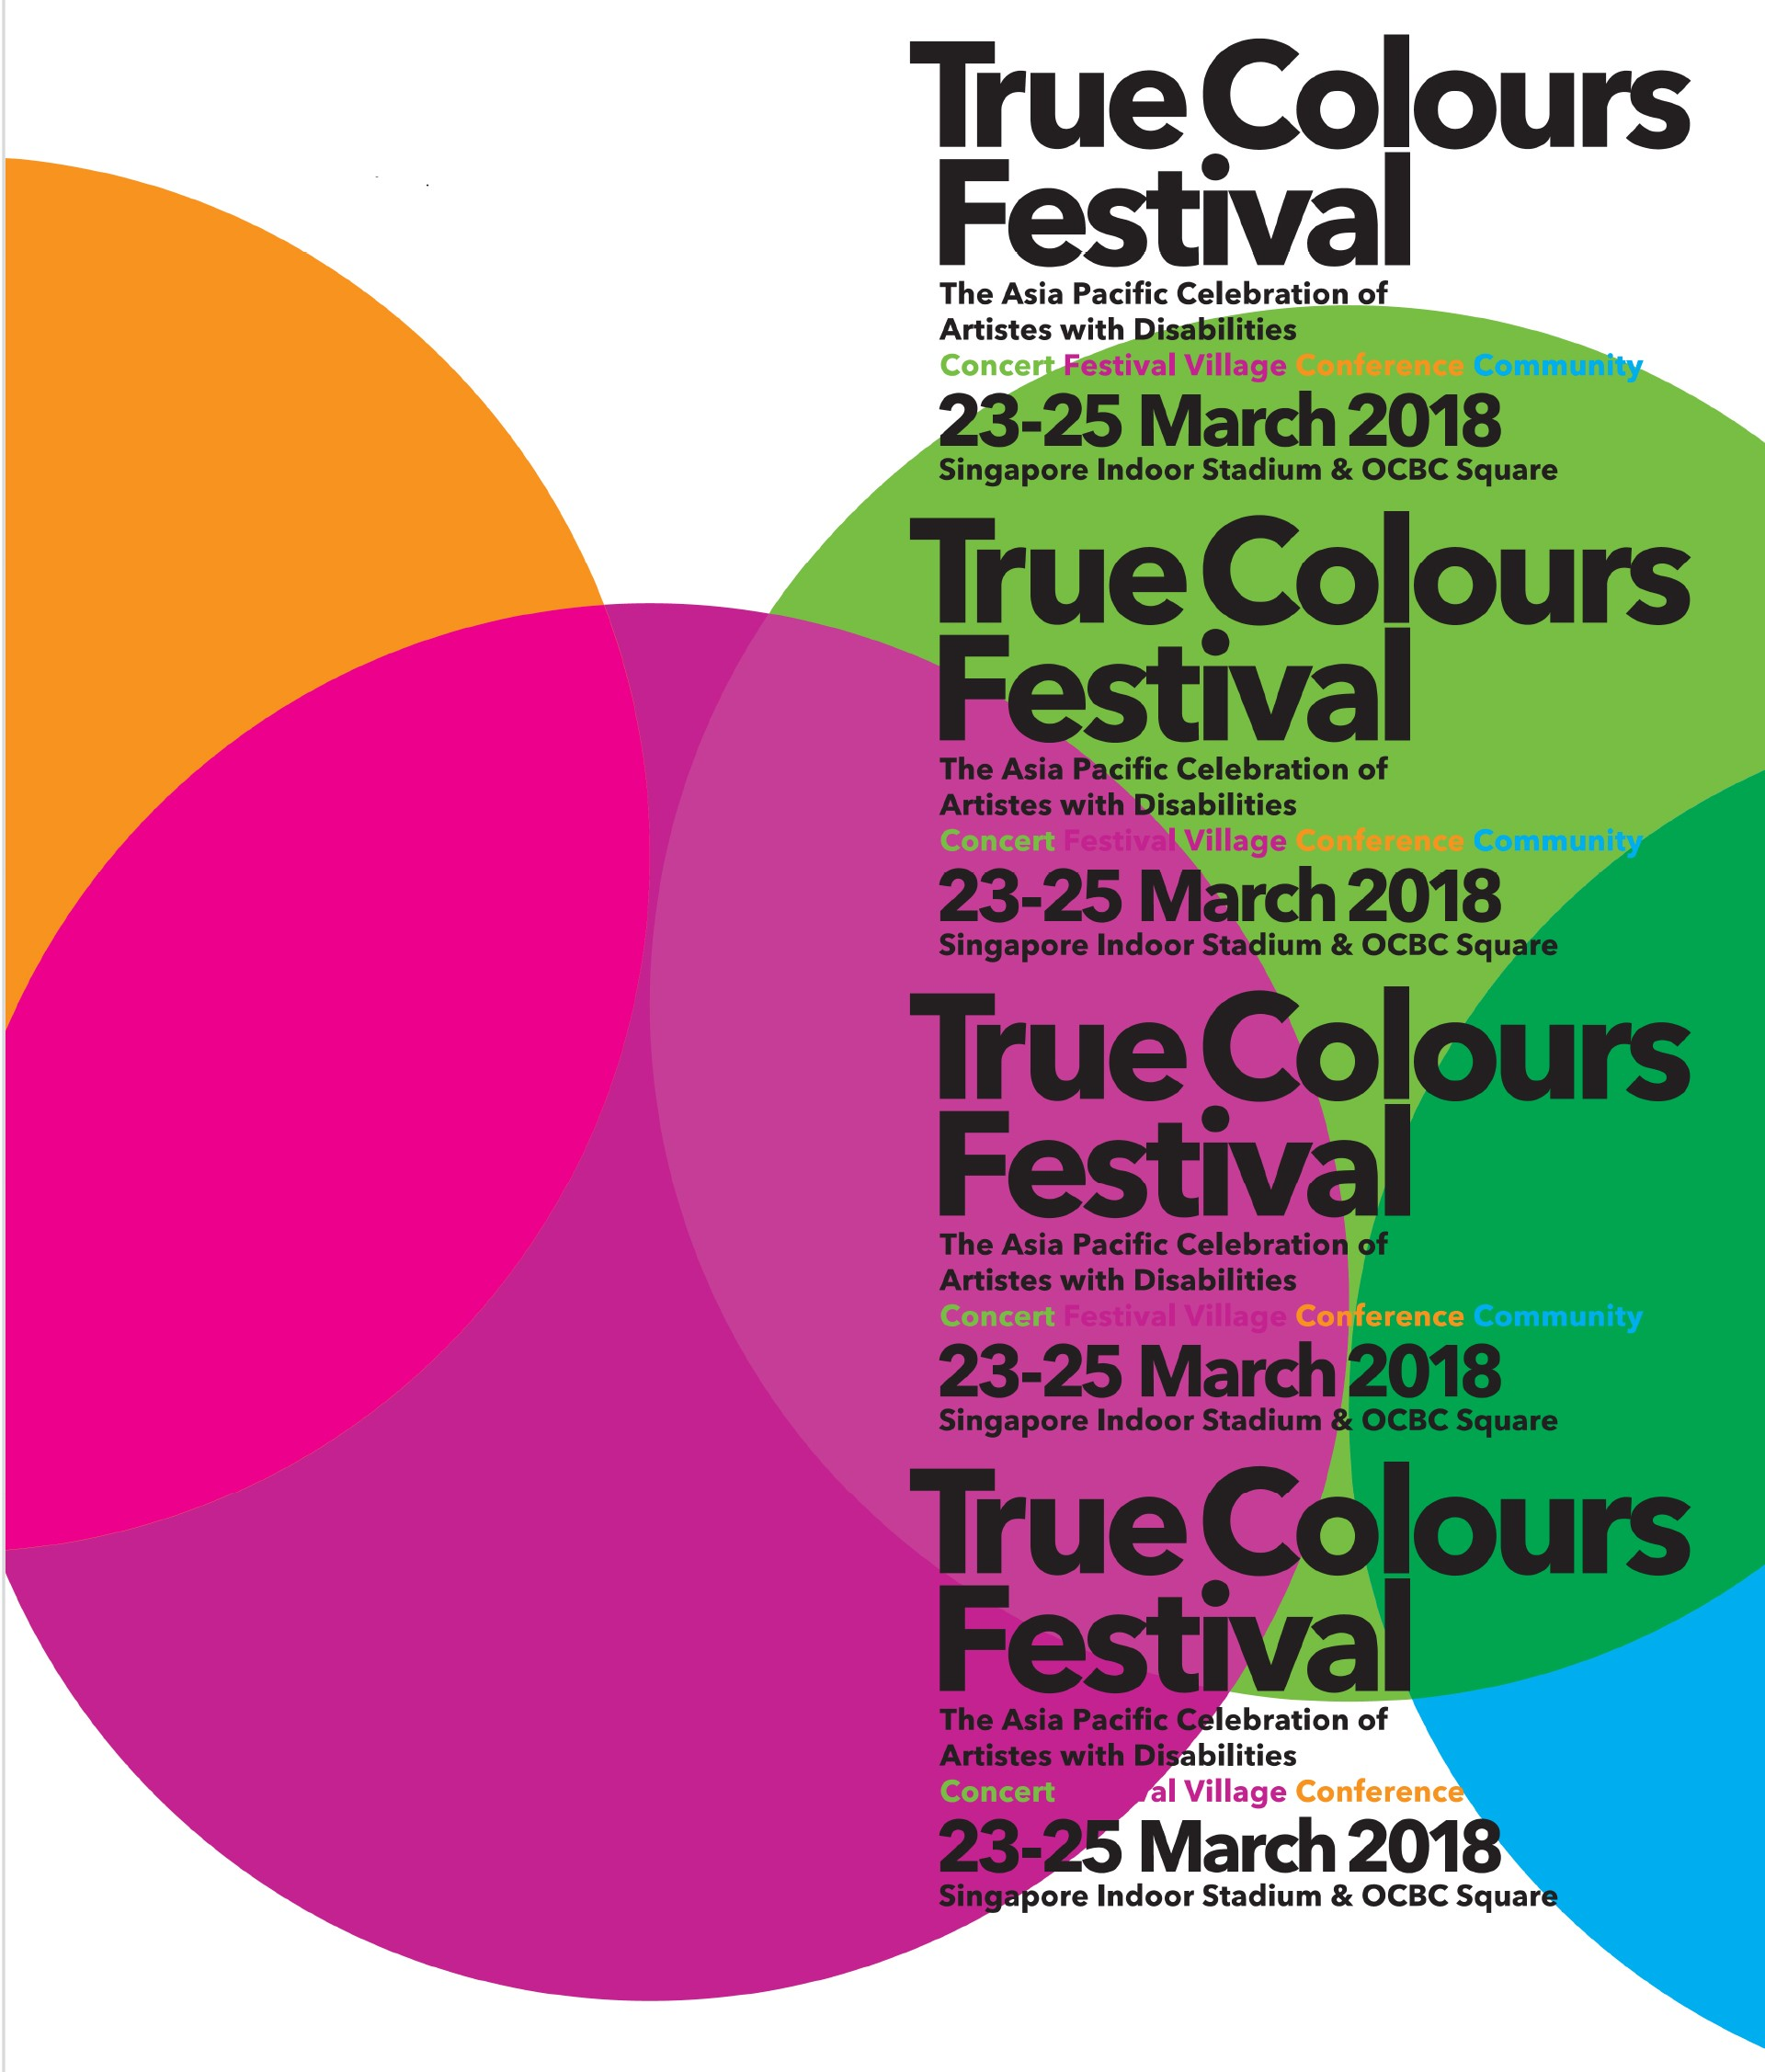 True Colours Concert